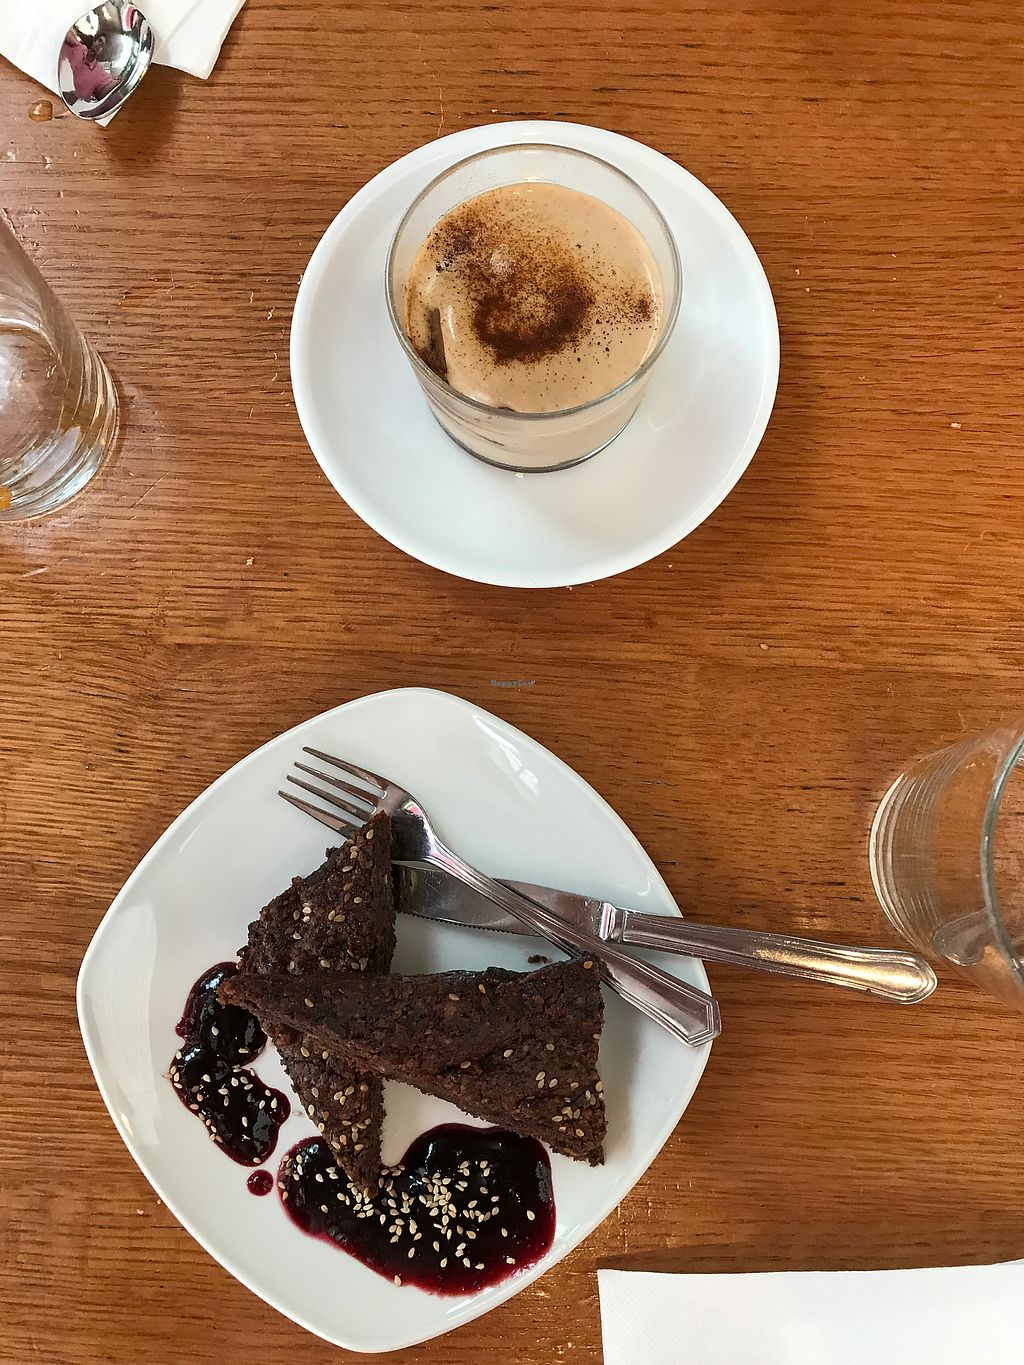 """Photo of Garraxi Restaurante Vegetariano  by <a href=""""/members/profile/miahnicole97"""">miahnicole97</a> <br/>tiramisu and brownie <br/> July 9, 2017  - <a href='/contact/abuse/image/9858/278459'>Report</a>"""